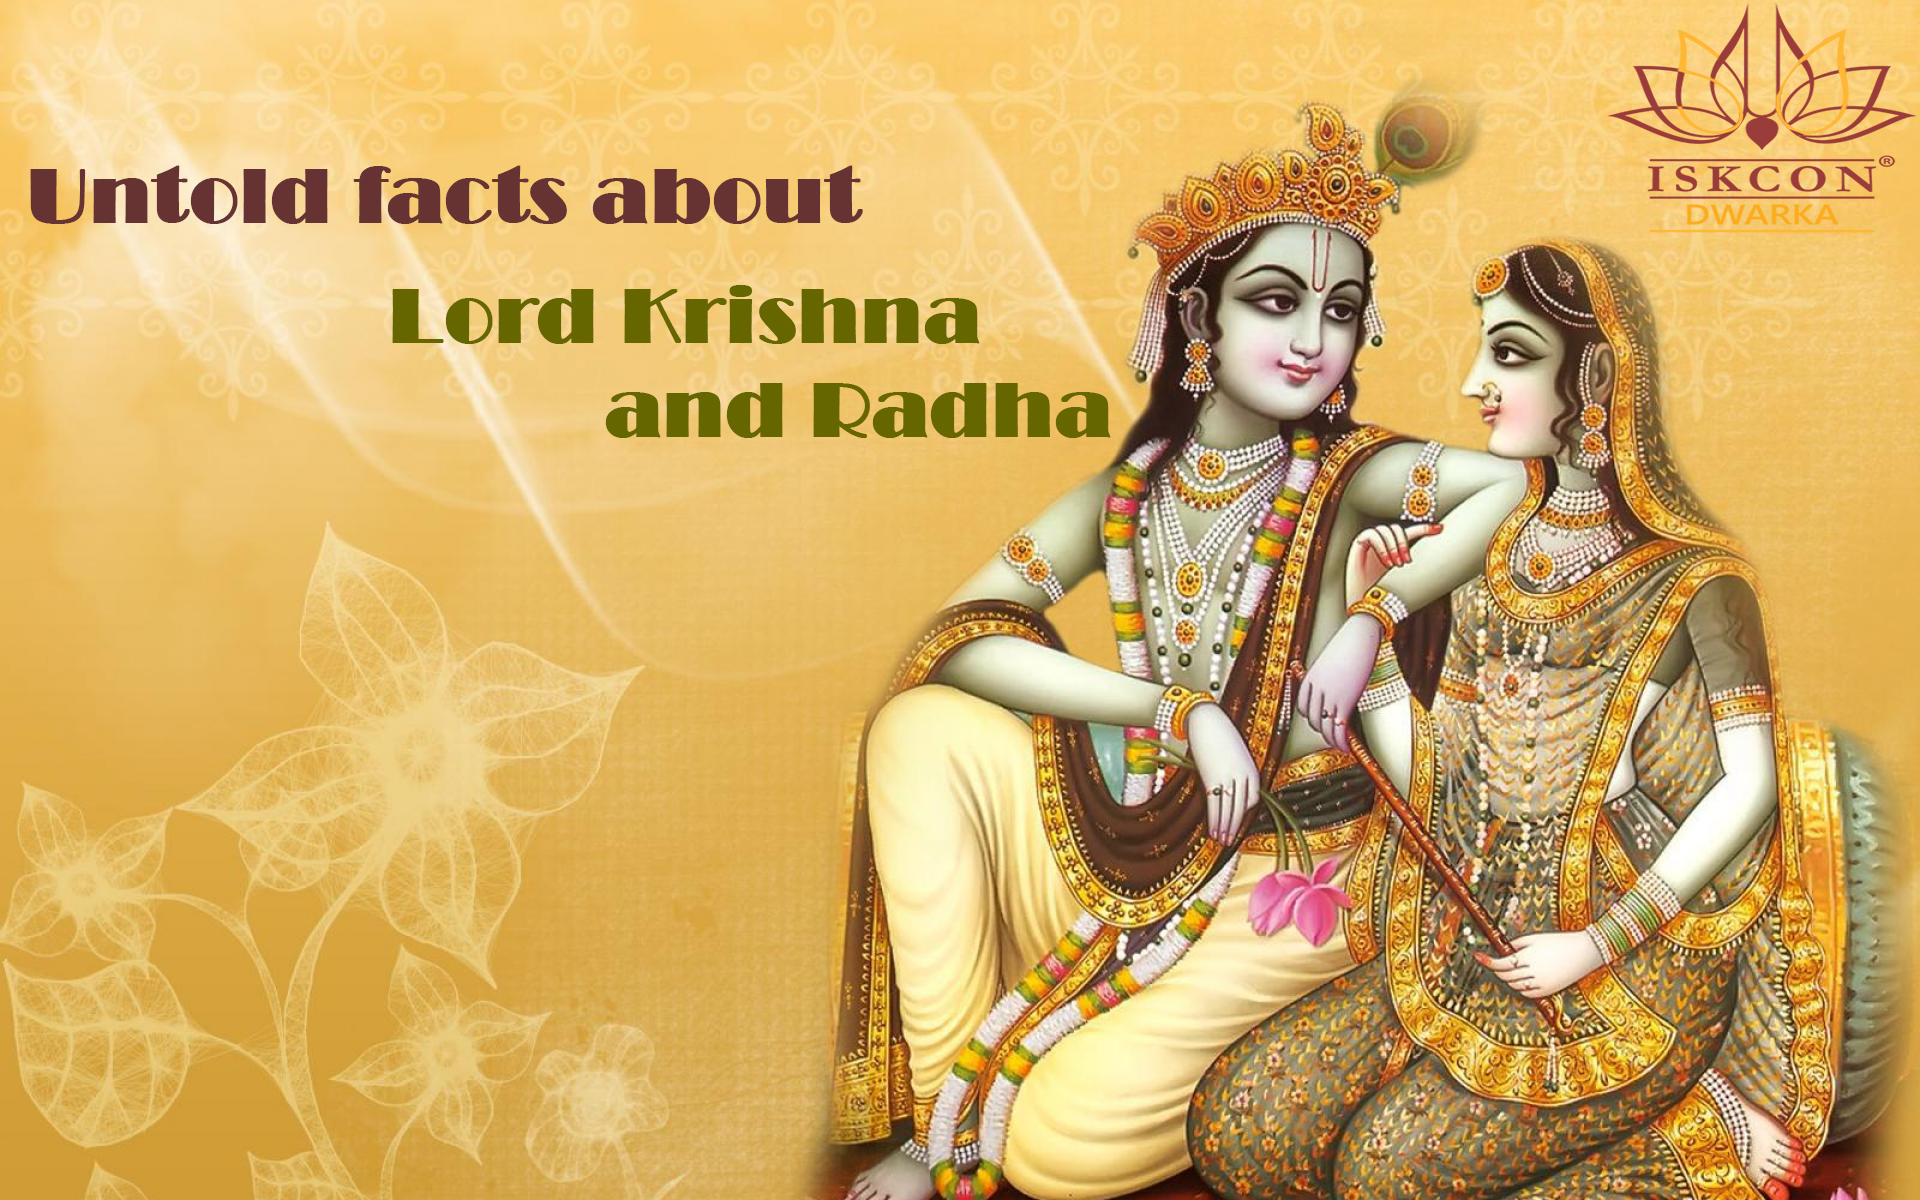 Thoughts Quotes Wallpaper Untold Facts Of Lord Krishna And Radha Iskcon Dwarka